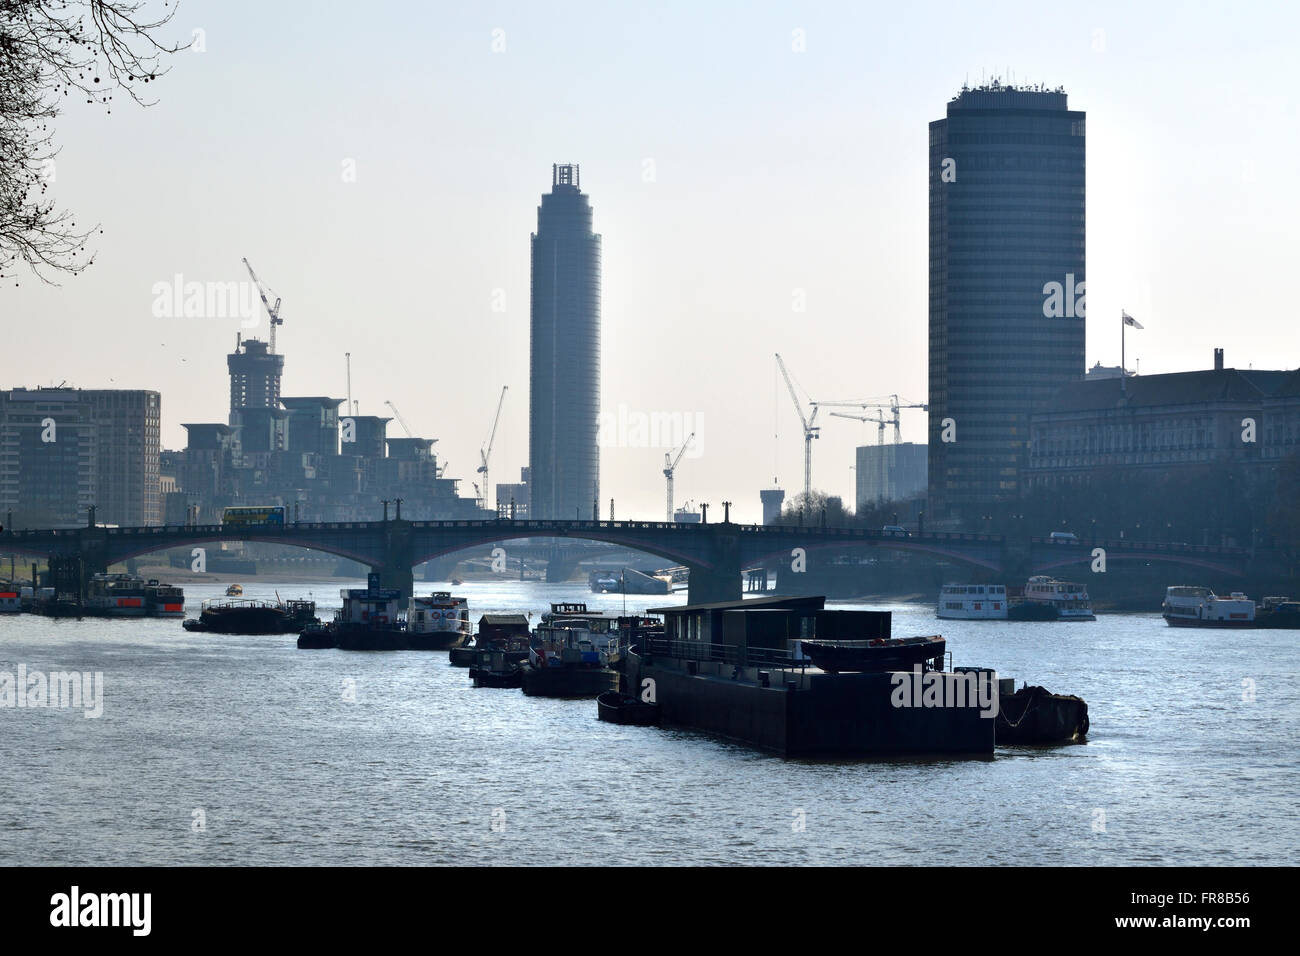 London, England, UK. Construction work, flats and cranes in Vauxhall, boats on the River Thames seen from Westminster Stock Photo